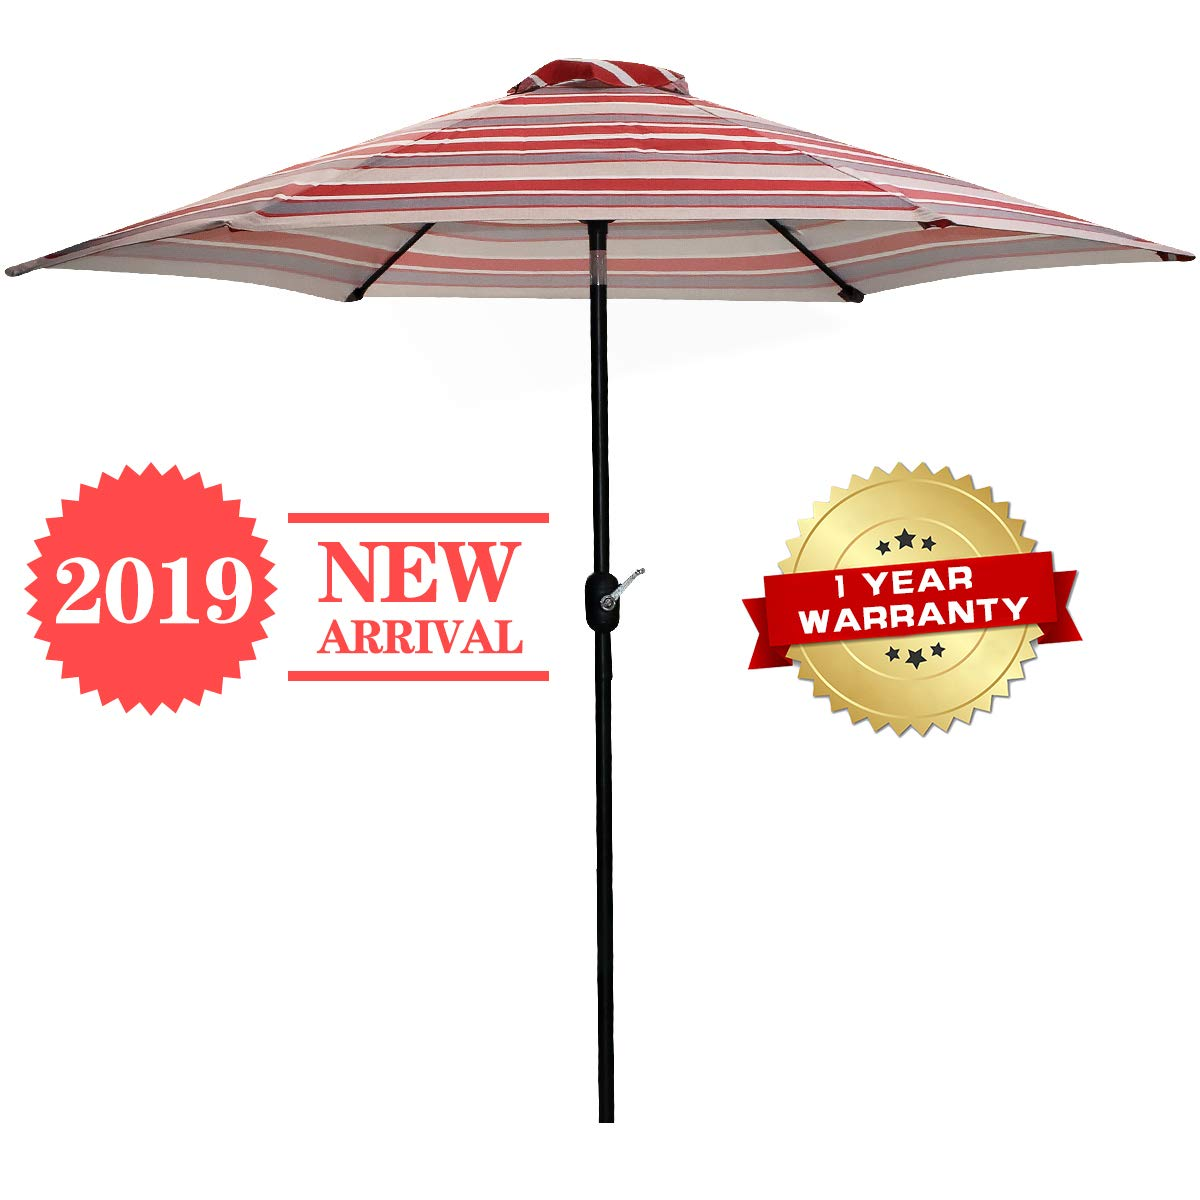 FRUITEAM Patio Umbrella Outdoor 7 1 2ft Table Umbrella with Push Button Tilt and Crank, Waterproof UV Resistant Sunbrella, Red Striped Aluminum Porch Umbrella, 1 Year Warranty